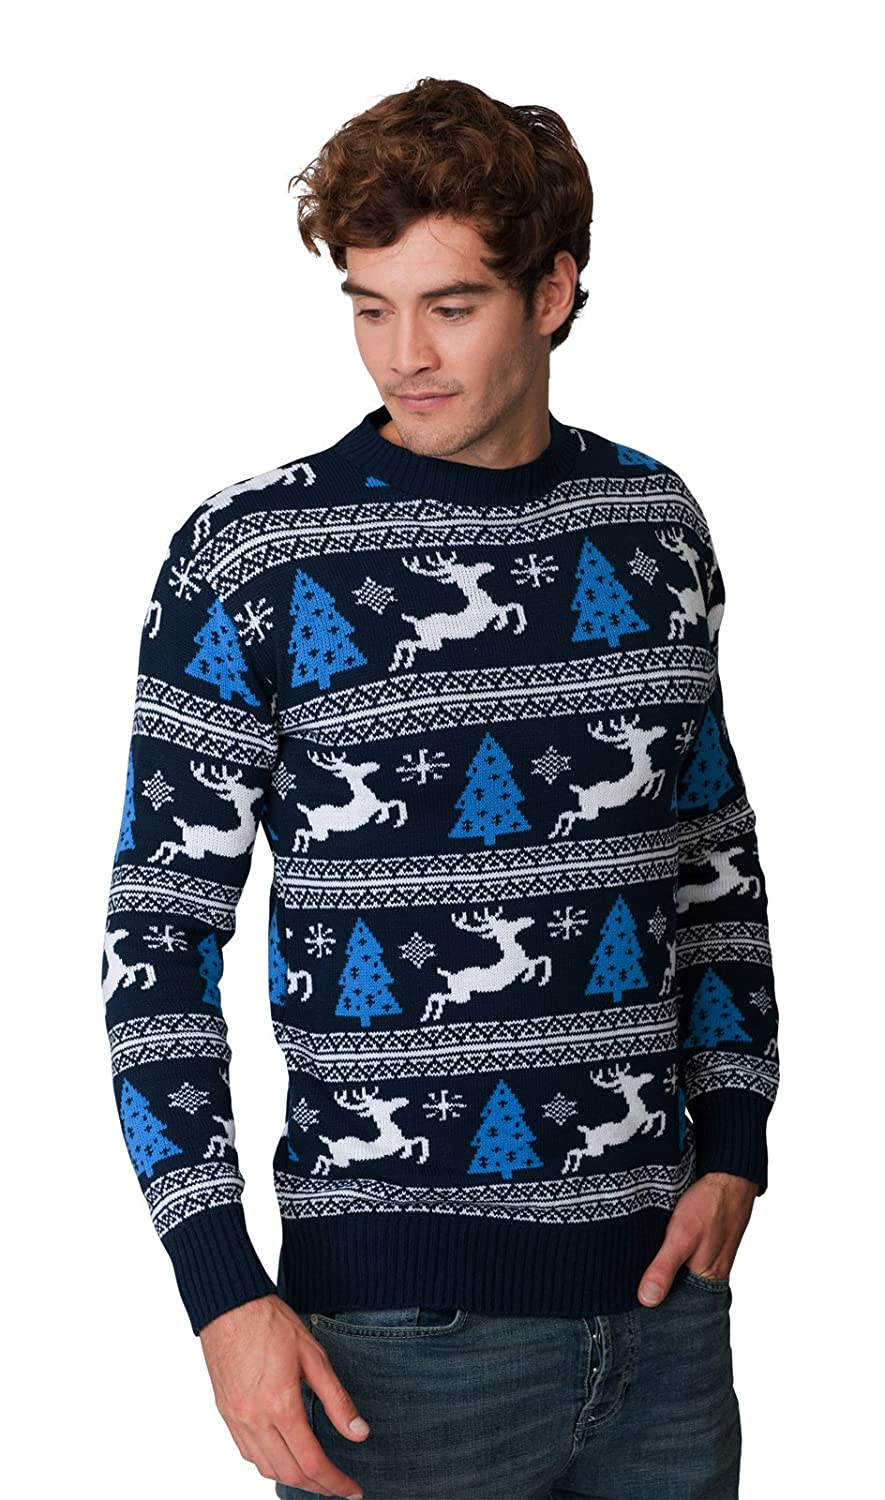 HSA Christmas Jumper New Xmas Unisex Mens Womens Novelty Retro Fairisle Santa Party Sweater Jumpers Exclusively to Ltd Sizes - S/M/L/XL/2XL/3XL/4XL